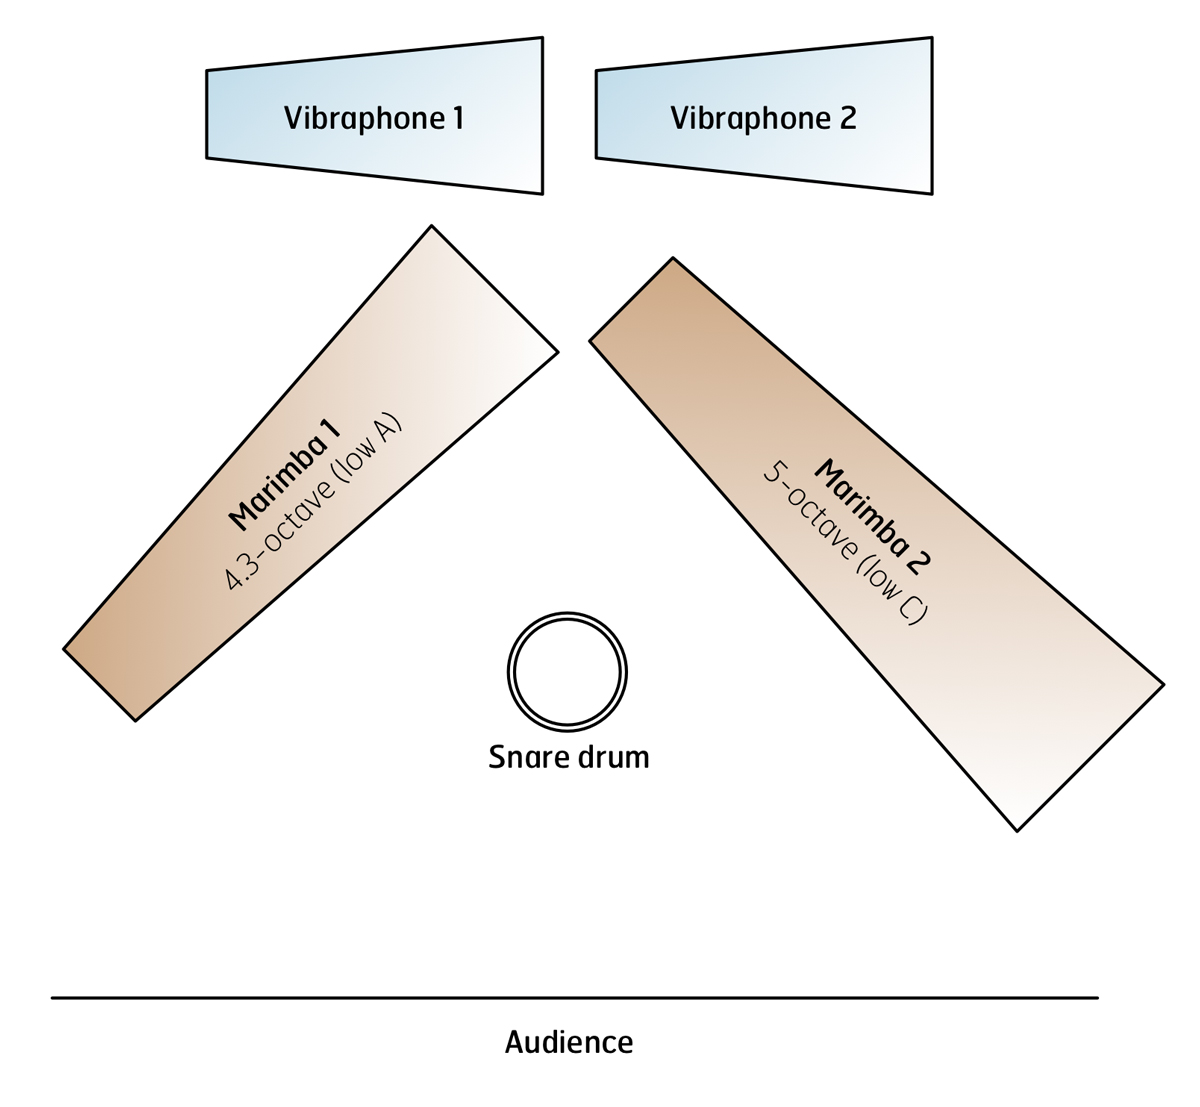 Kibo Andrea Venet Tapspace Creativity In Percussion Snare Drum Diagram